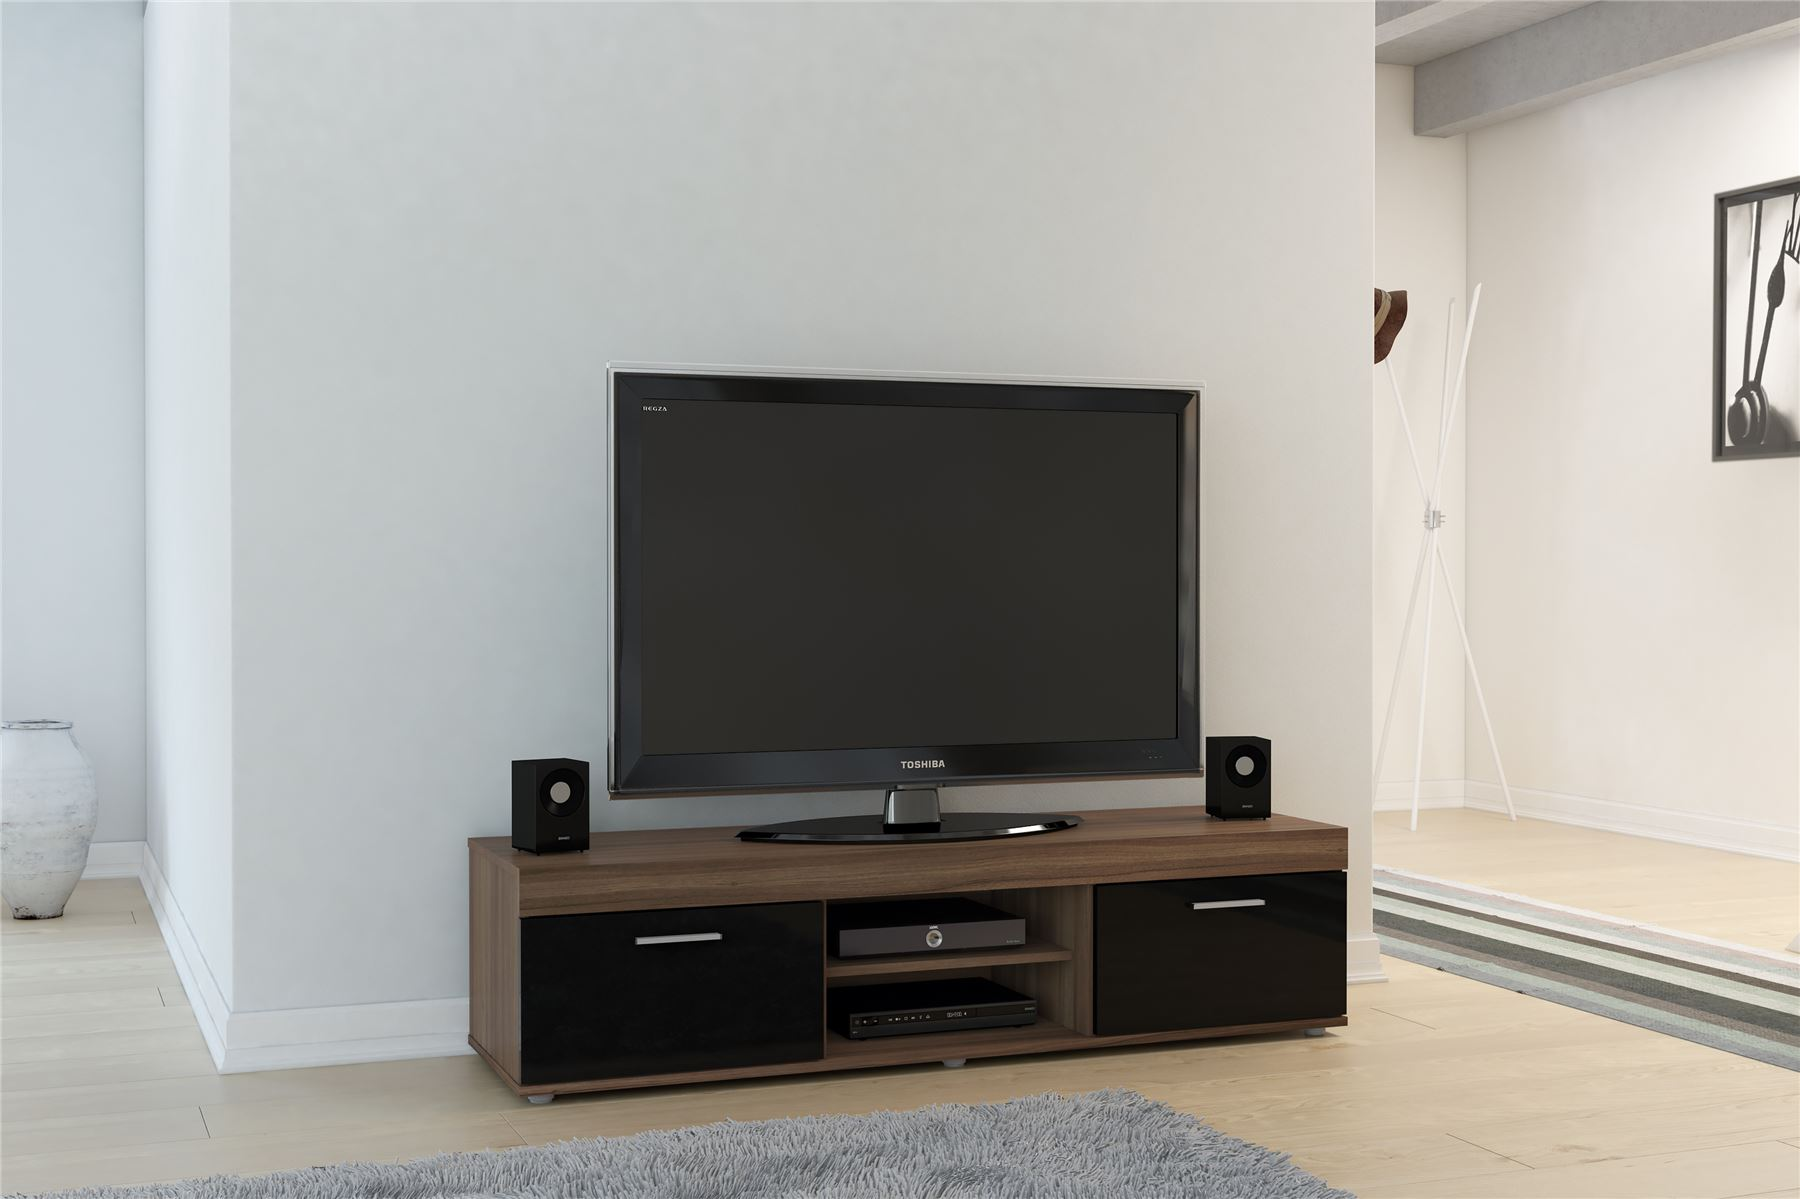 Black Gloss Walnut Living Room Cupboard TV Entertainment Unit Stand Cabinet